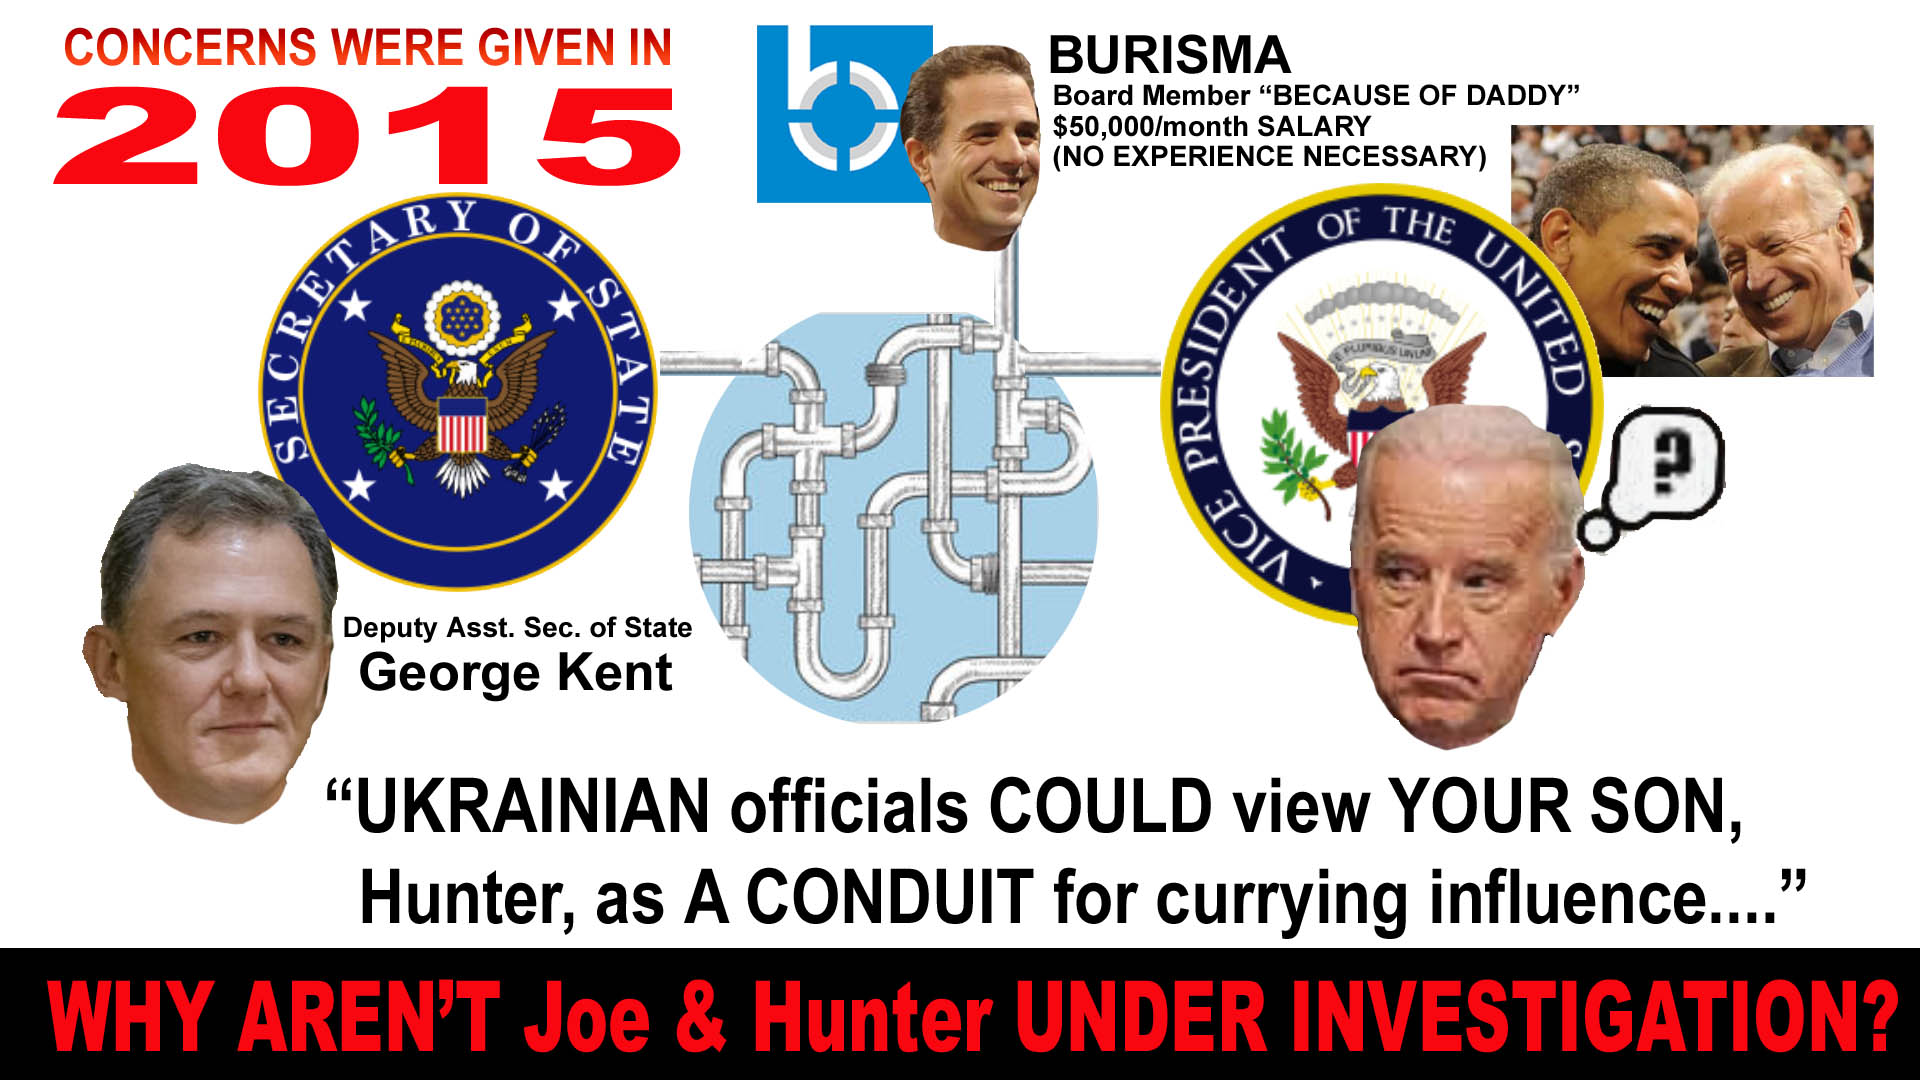 BIDEN - WHY ARENT  JOE  AND  HUNTER   UNDER INVESTIGATION - JPEG.jpg